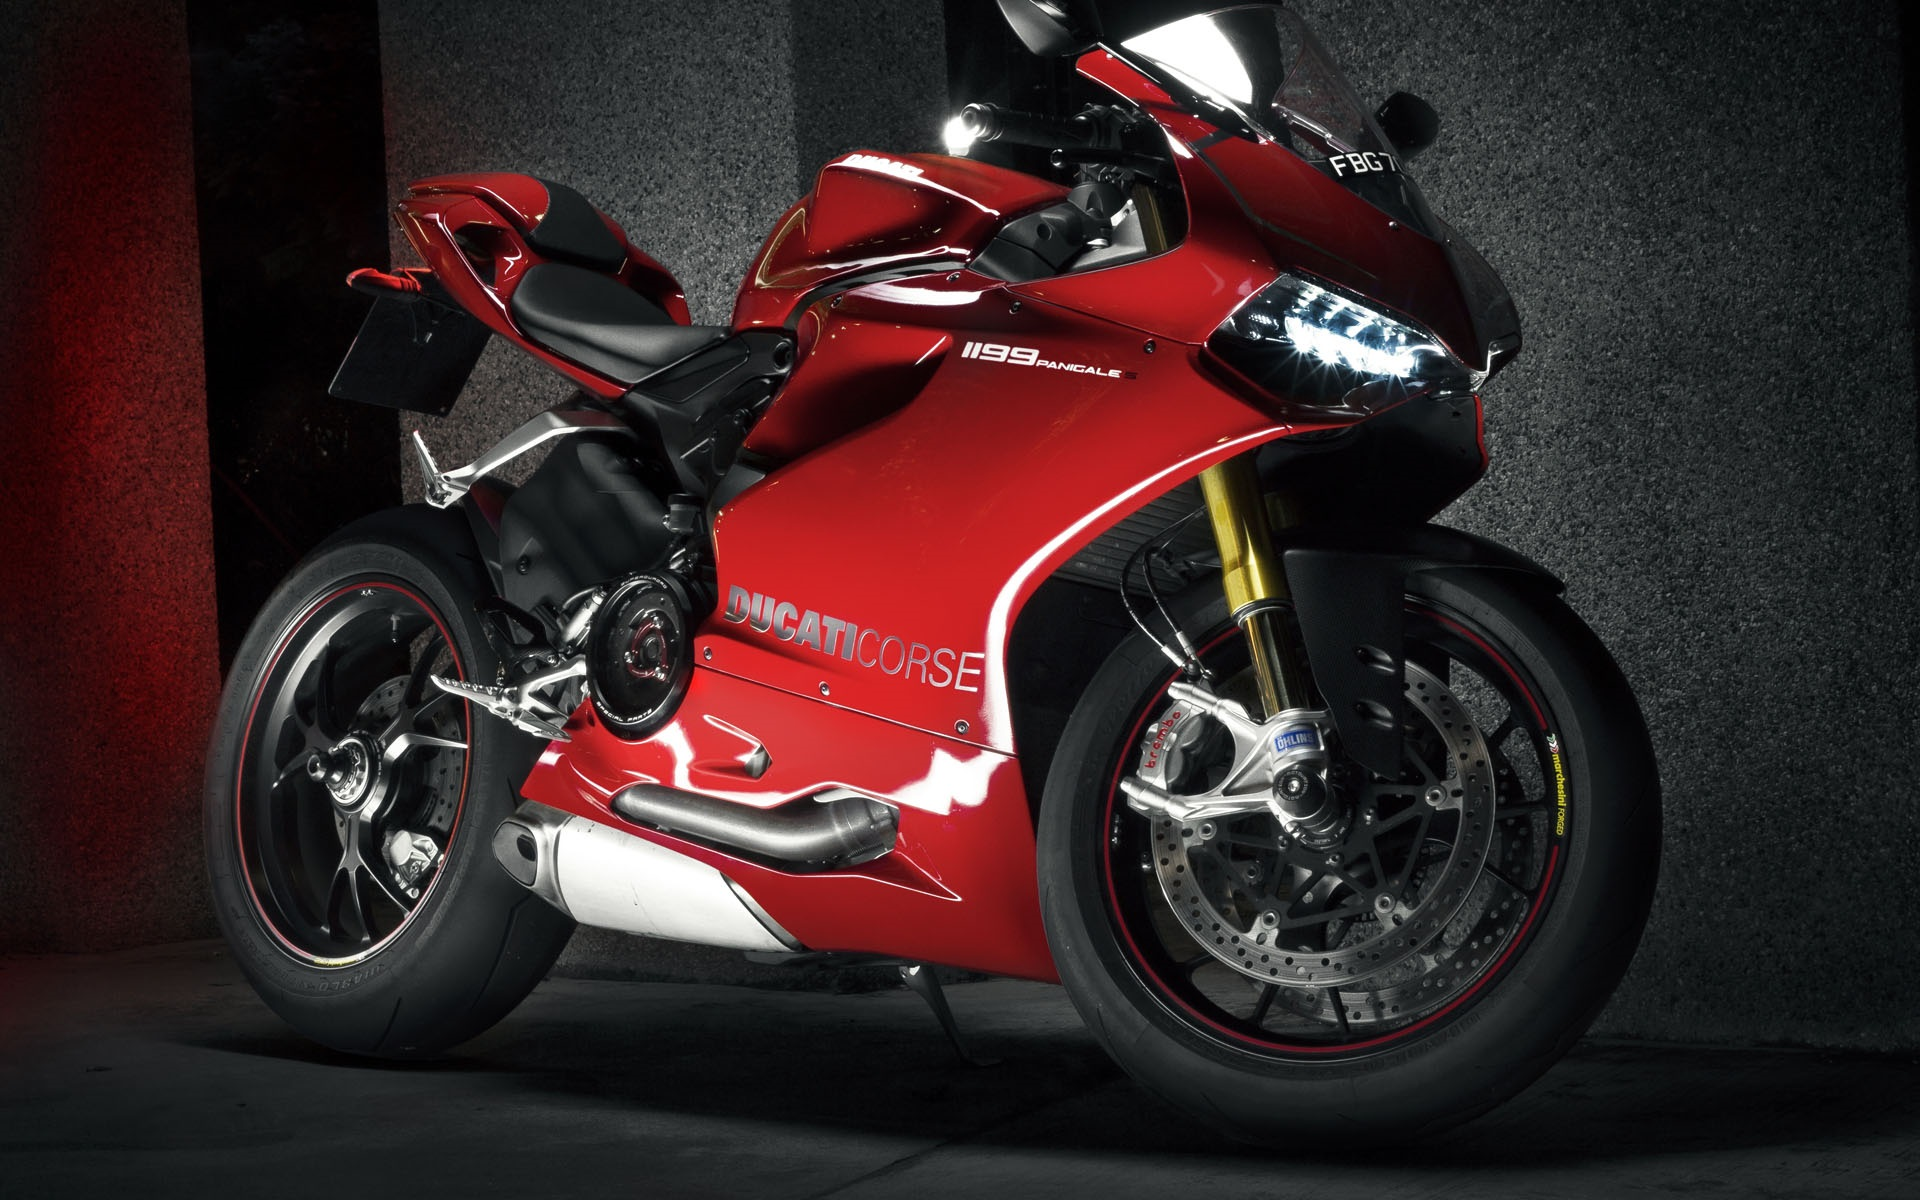 ducati 1199 panigale hd wallpaper hd latest wallpapers. Black Bedroom Furniture Sets. Home Design Ideas